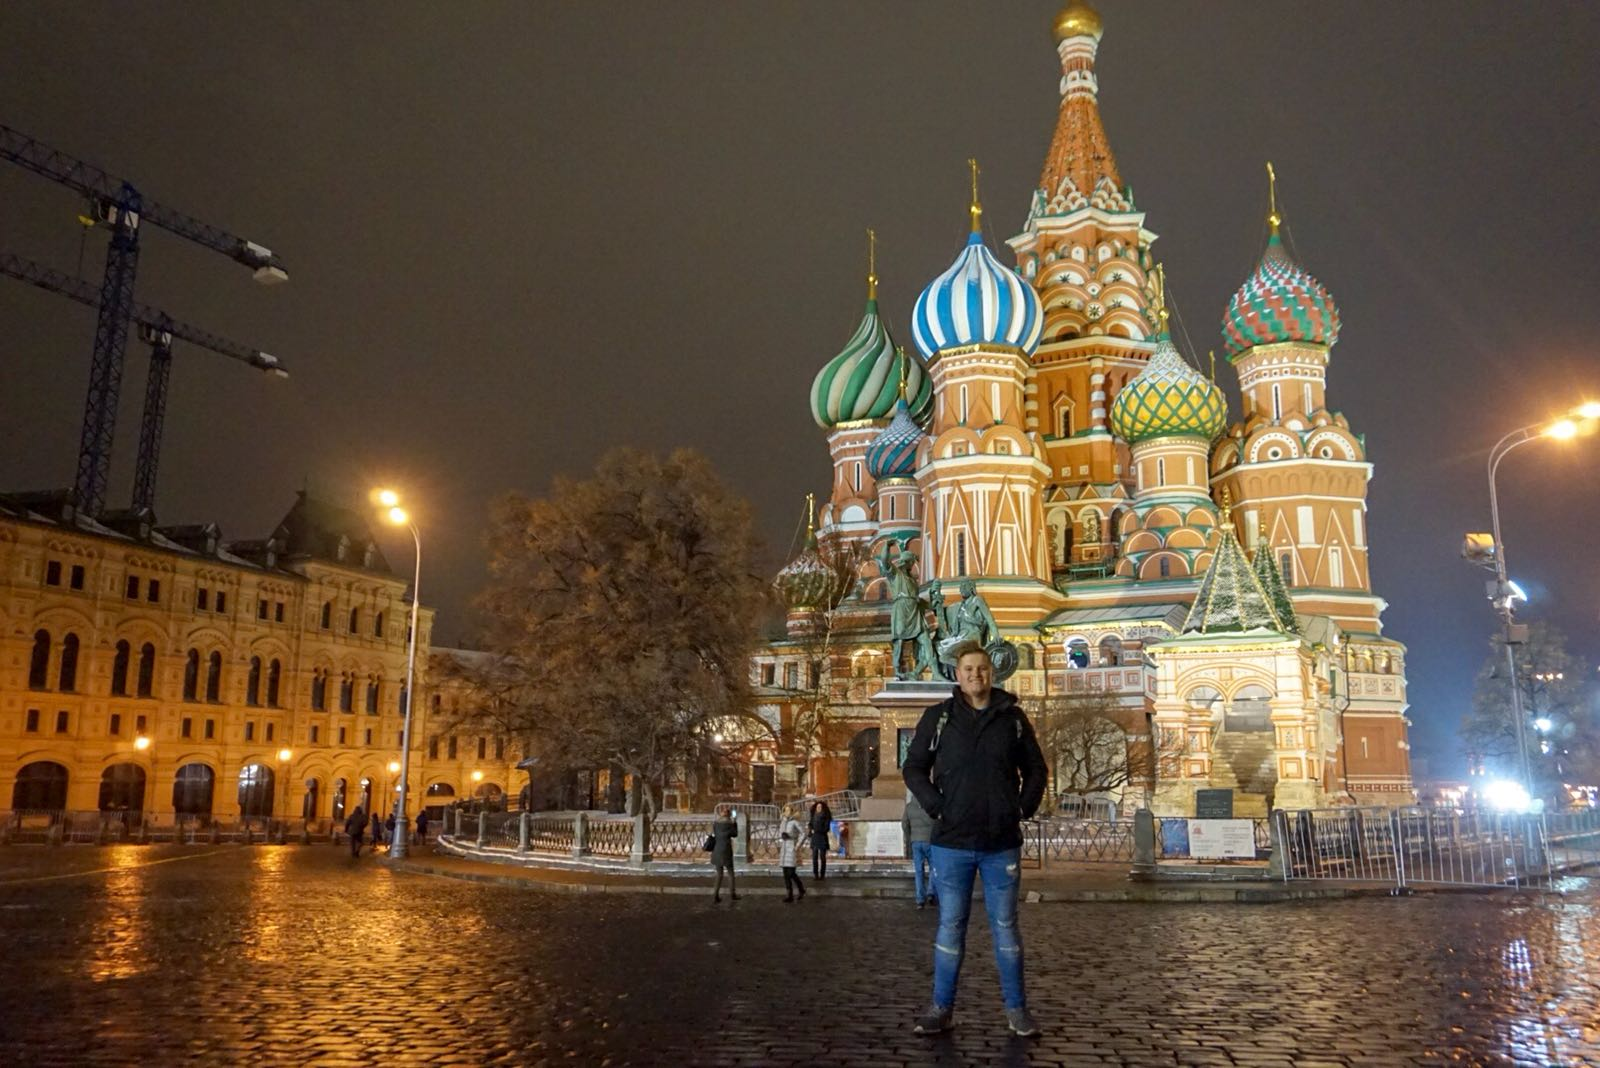 I had an amazing time in Russia and not once felt unsafe. My advice if you want to attend the World Cup is simply to go, and act as you would if you went a normal city break or holiday.